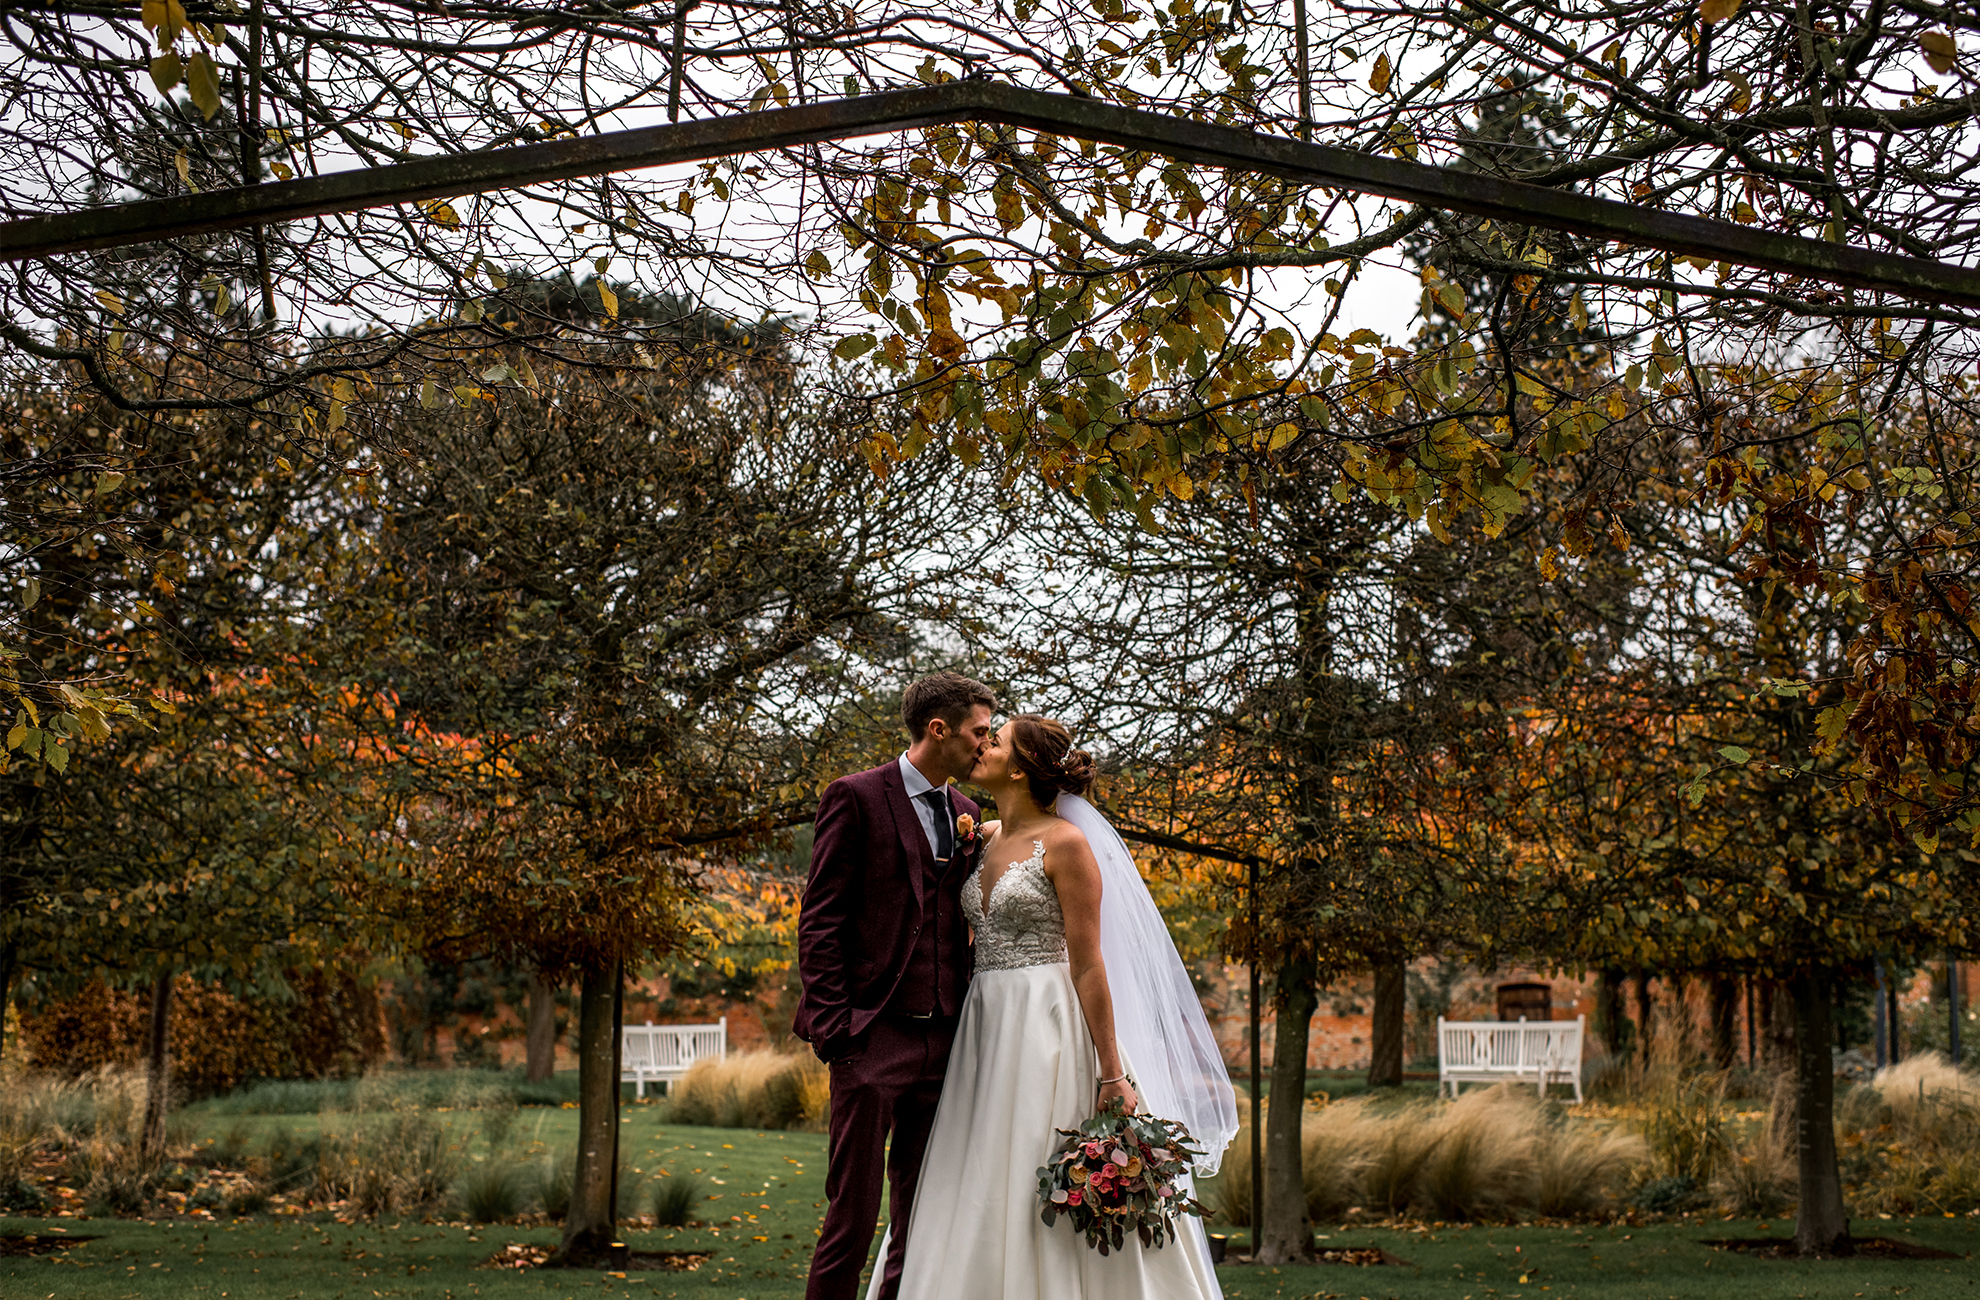 Wedding Planning: 7 Ideas For A Winter Wedding | Combermere Abbey